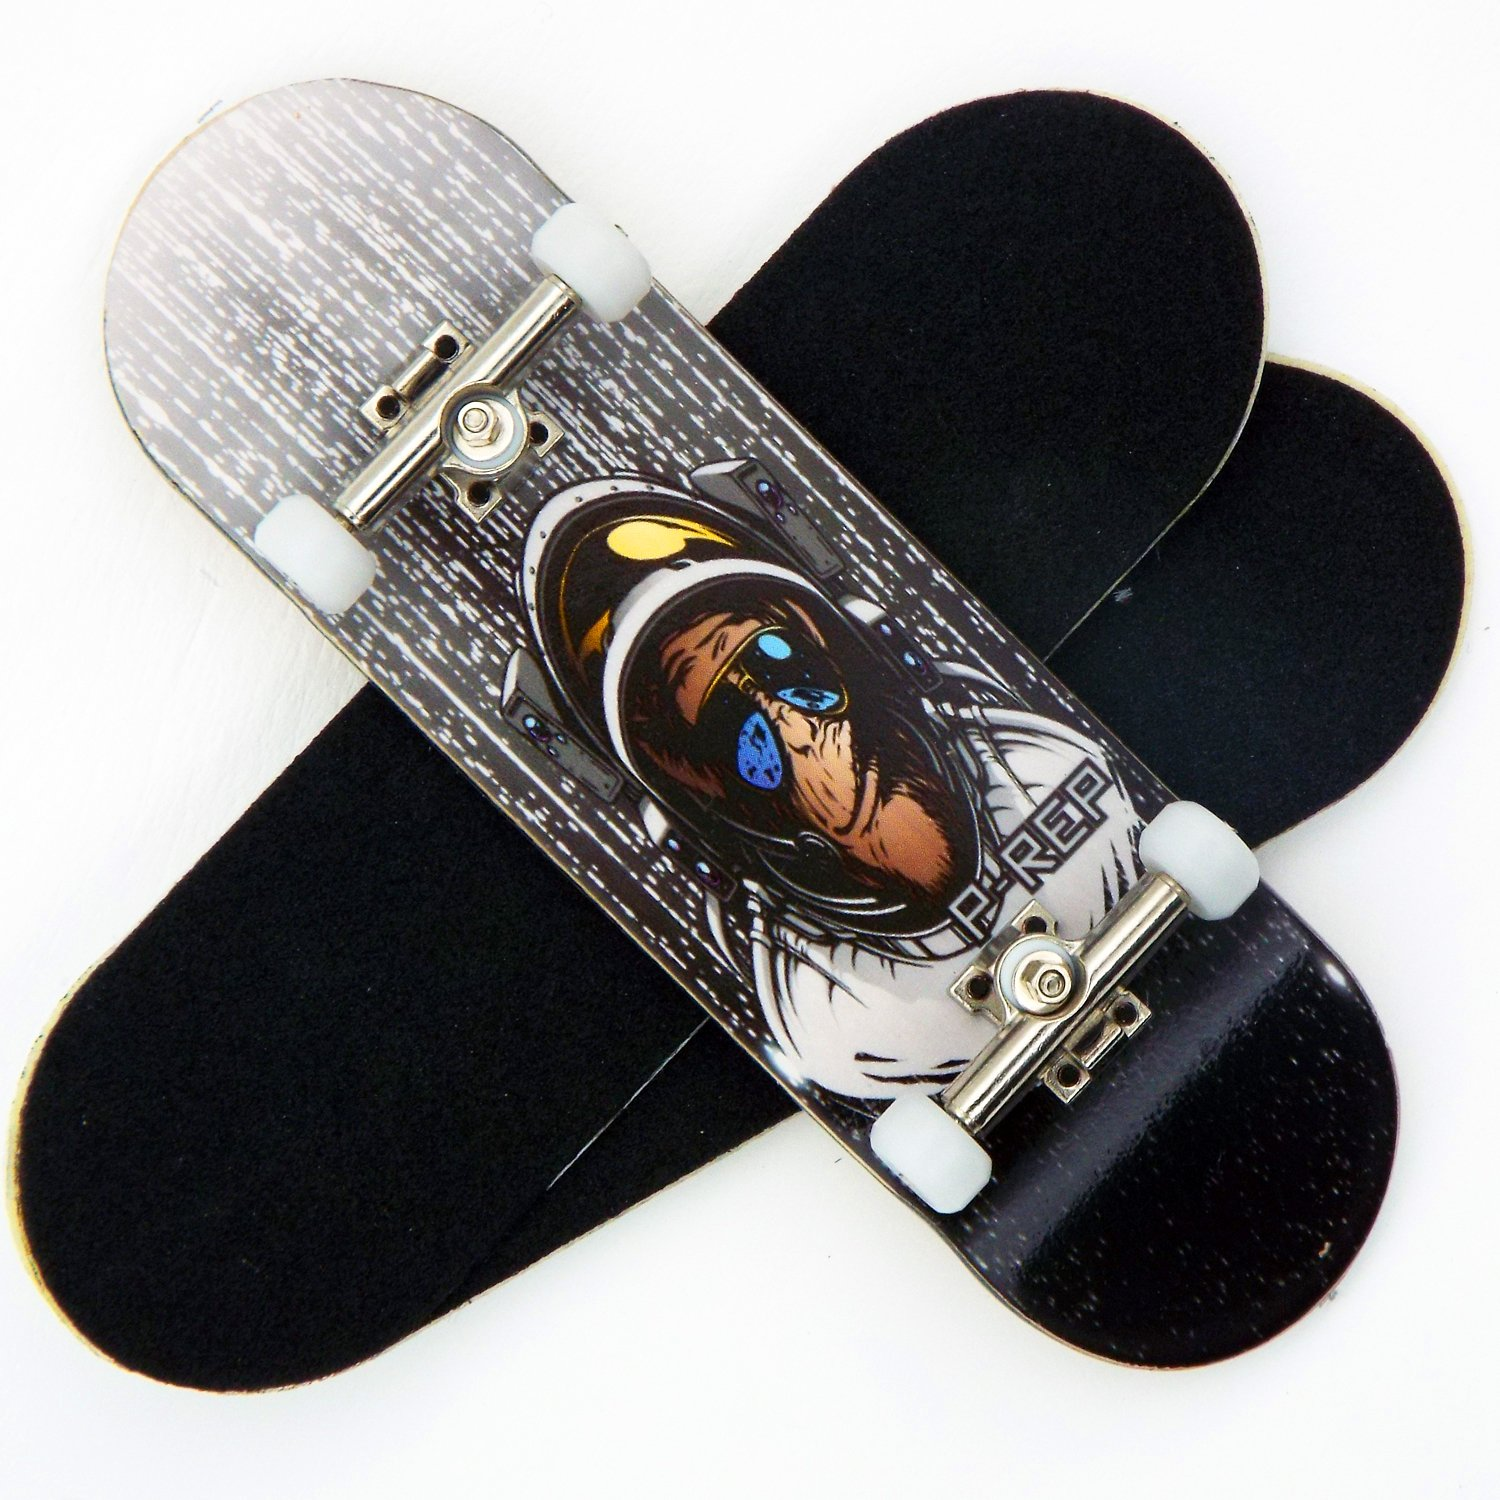 Peoples Republic P-Rep Space Monkey 30mm Graphic Complete Wooden Fingerboard w CNC Lathed Bearing Wheels